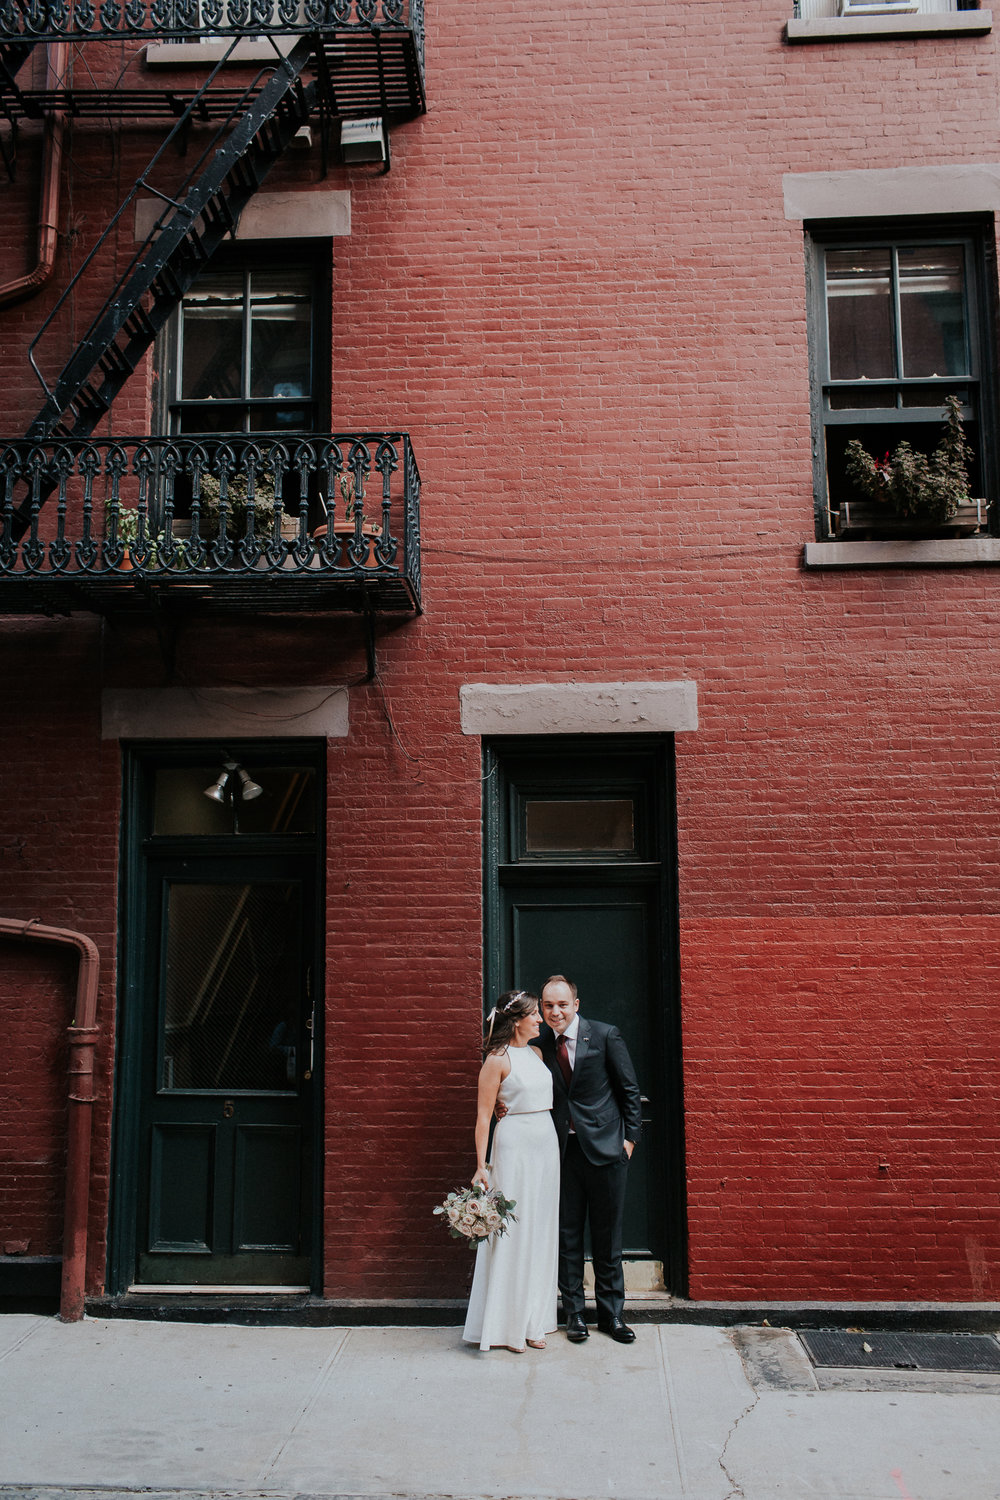 Casa-Apicii-Intimate-Wedding-City-Hall-Elopement-New-York-Documentary-Wedding-Photographer-40.jpg